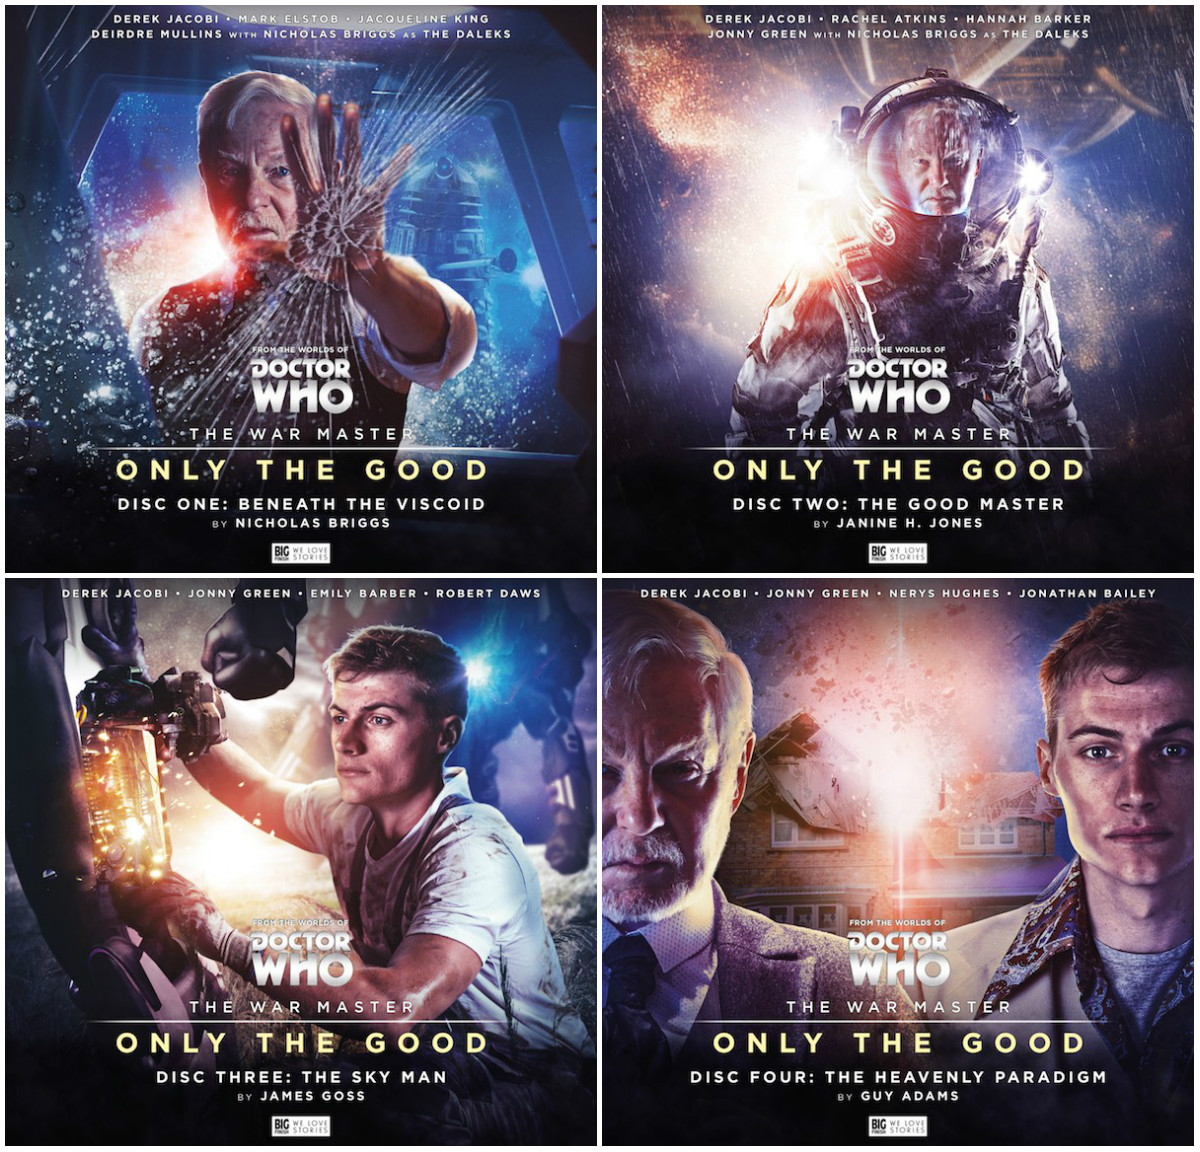 The Good Master (audio story) doctor who the war master